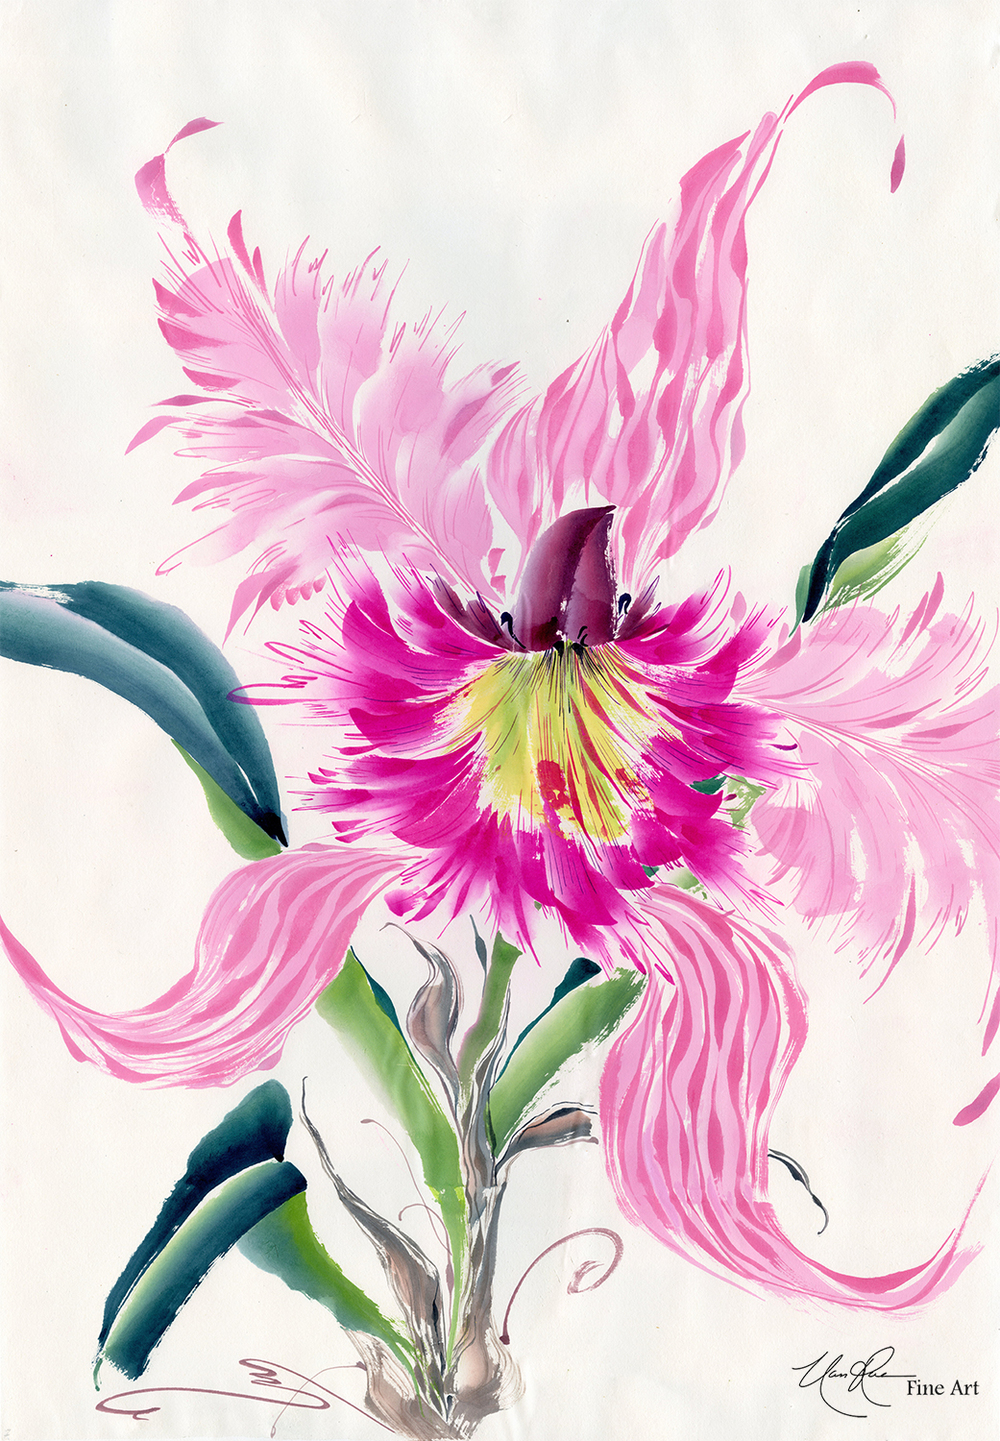 Cattleya: Studies in Pink IV